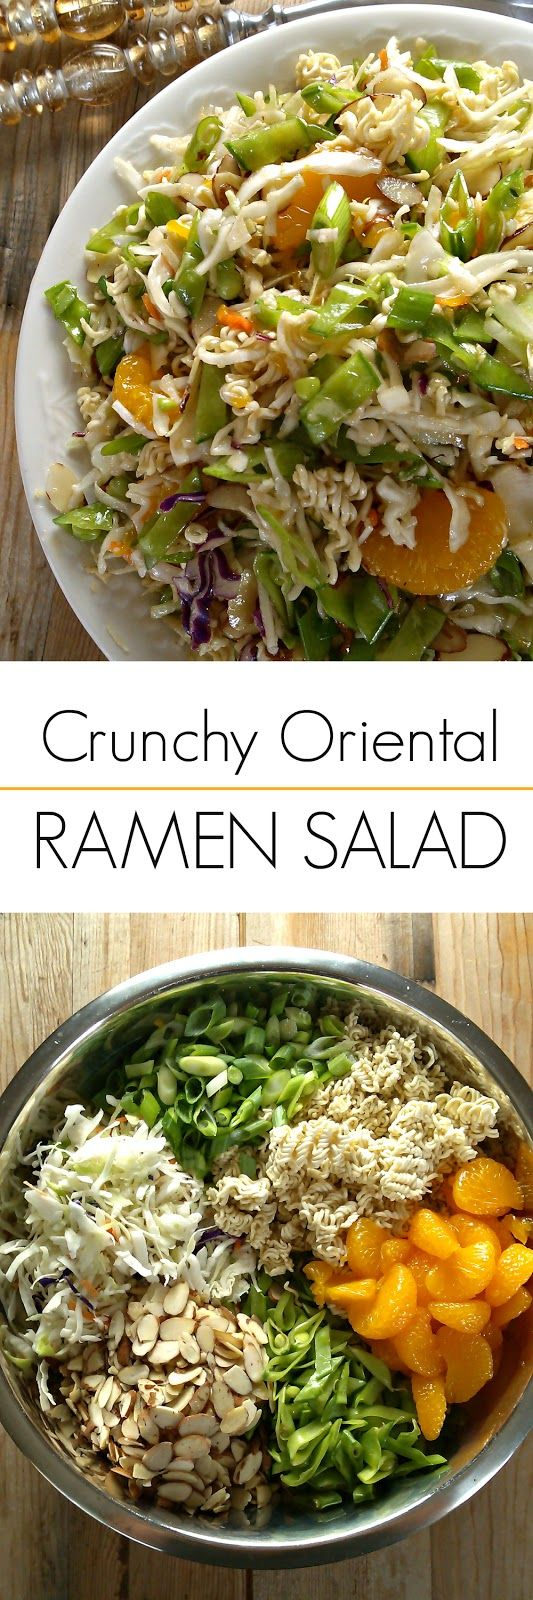 Crunchy Oriental Ramen Salad using coleslaw mix and ramen noodles! This  retro Asian inspired salad - Pinterest €� The World's Catalog Of Ideas